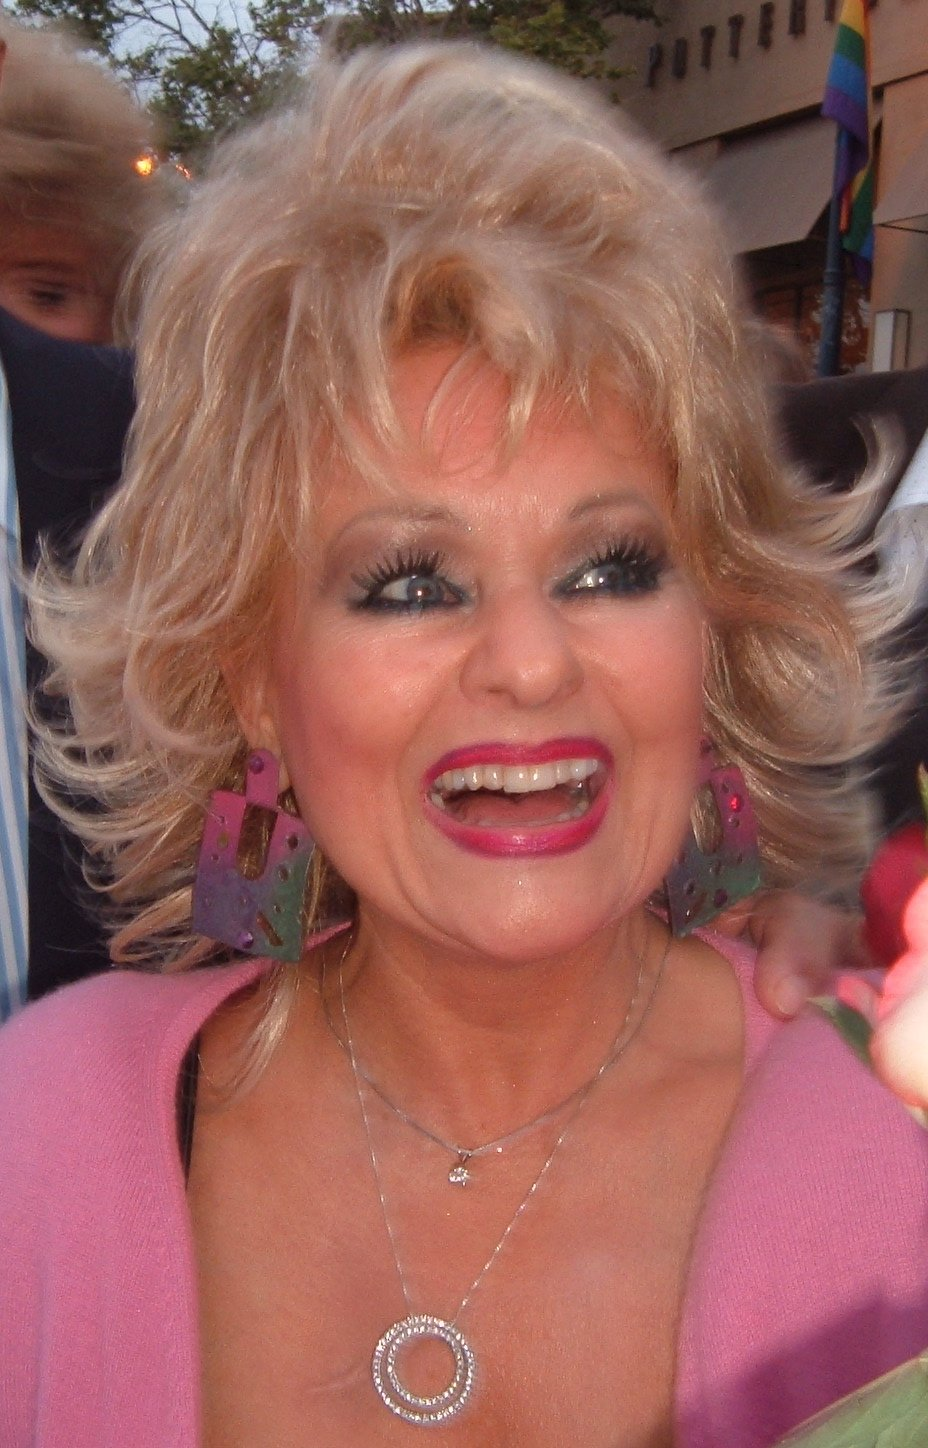 File:Tammy Faye Messner.jpg - Wikimedia Commons